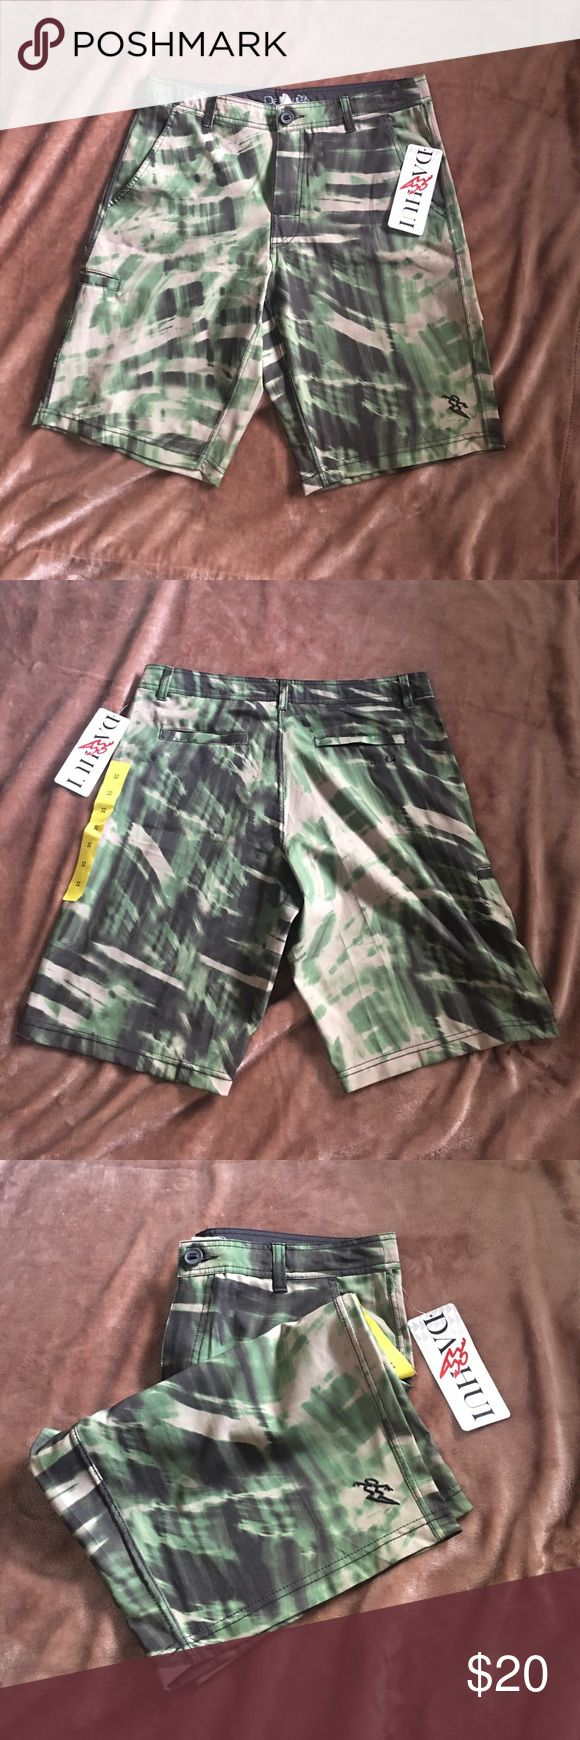 """Surf shorts These shorts can be used to swim or just be worn as casual shorts. Have pockets on the side and back. Belt loops and button and zipper closure. Also has drawstring on inside. Brand new with tags. No flaws. """"Da Hui"""" brand, listed as Volcom for exposure Volcom Shorts Hybrids"""